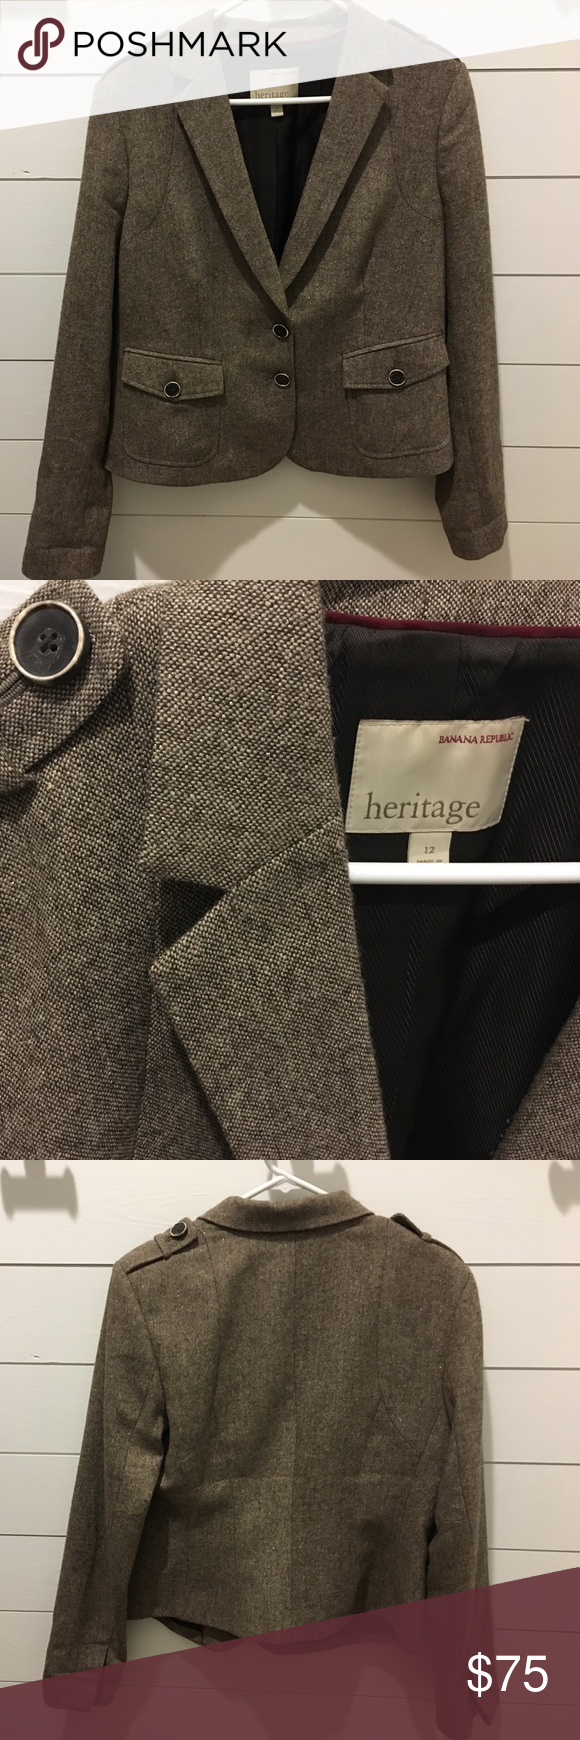 Heritage by Banana Republic blazer Brown with metallic threads, size 12- excellent condition, heritage by banana republic Banana Republic Jackets & Coats Blazers